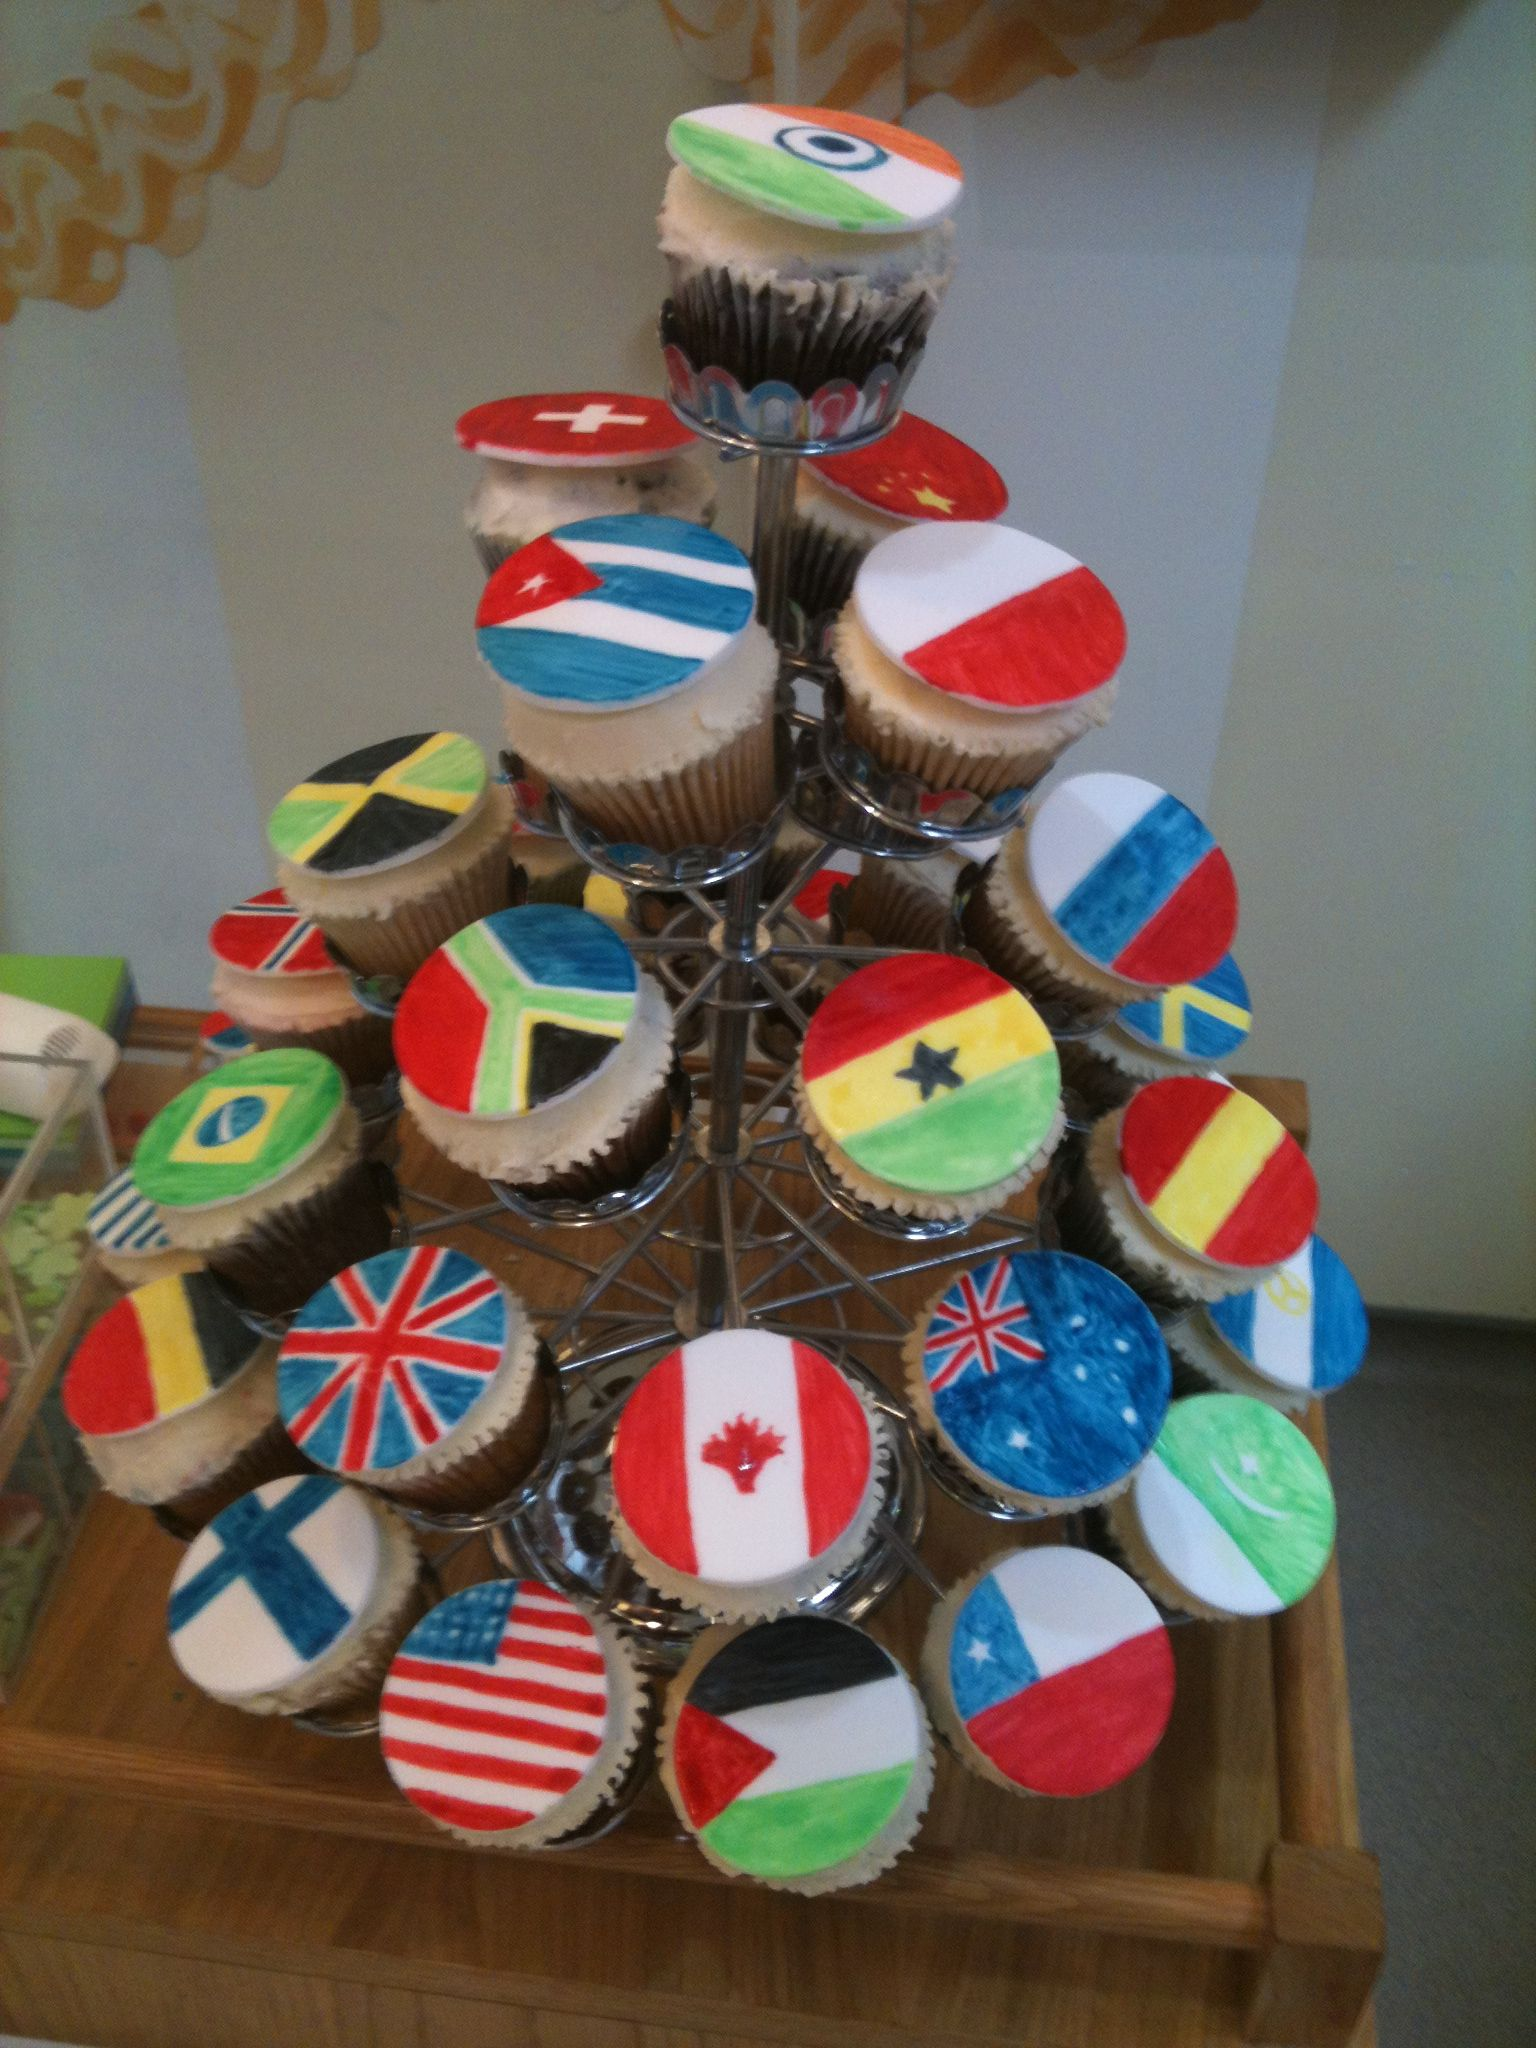 Cupcakes Decorated With Flags From Around The World